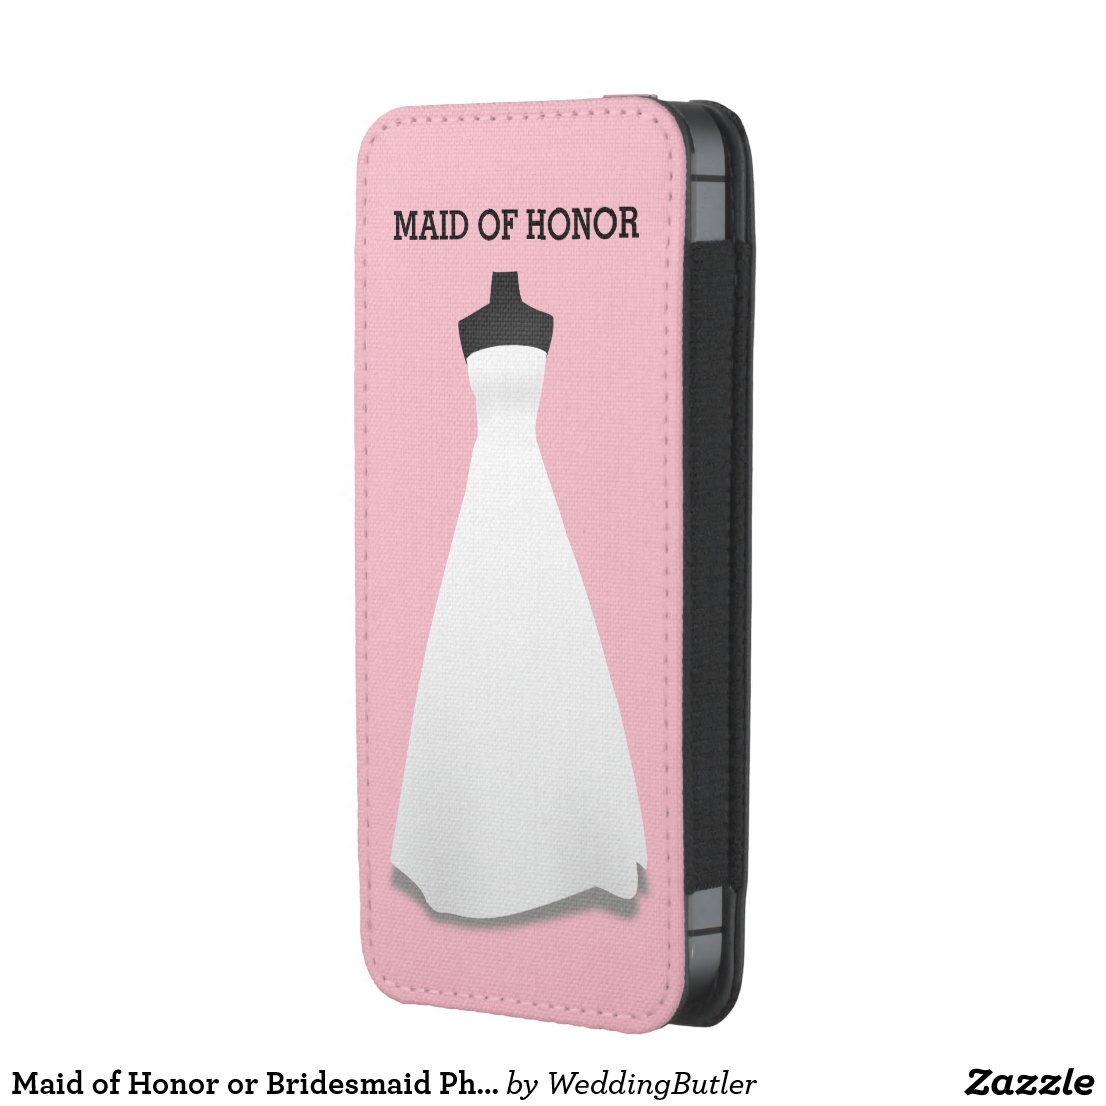 Maid of Honor or Bridesmaid Phone Pouch